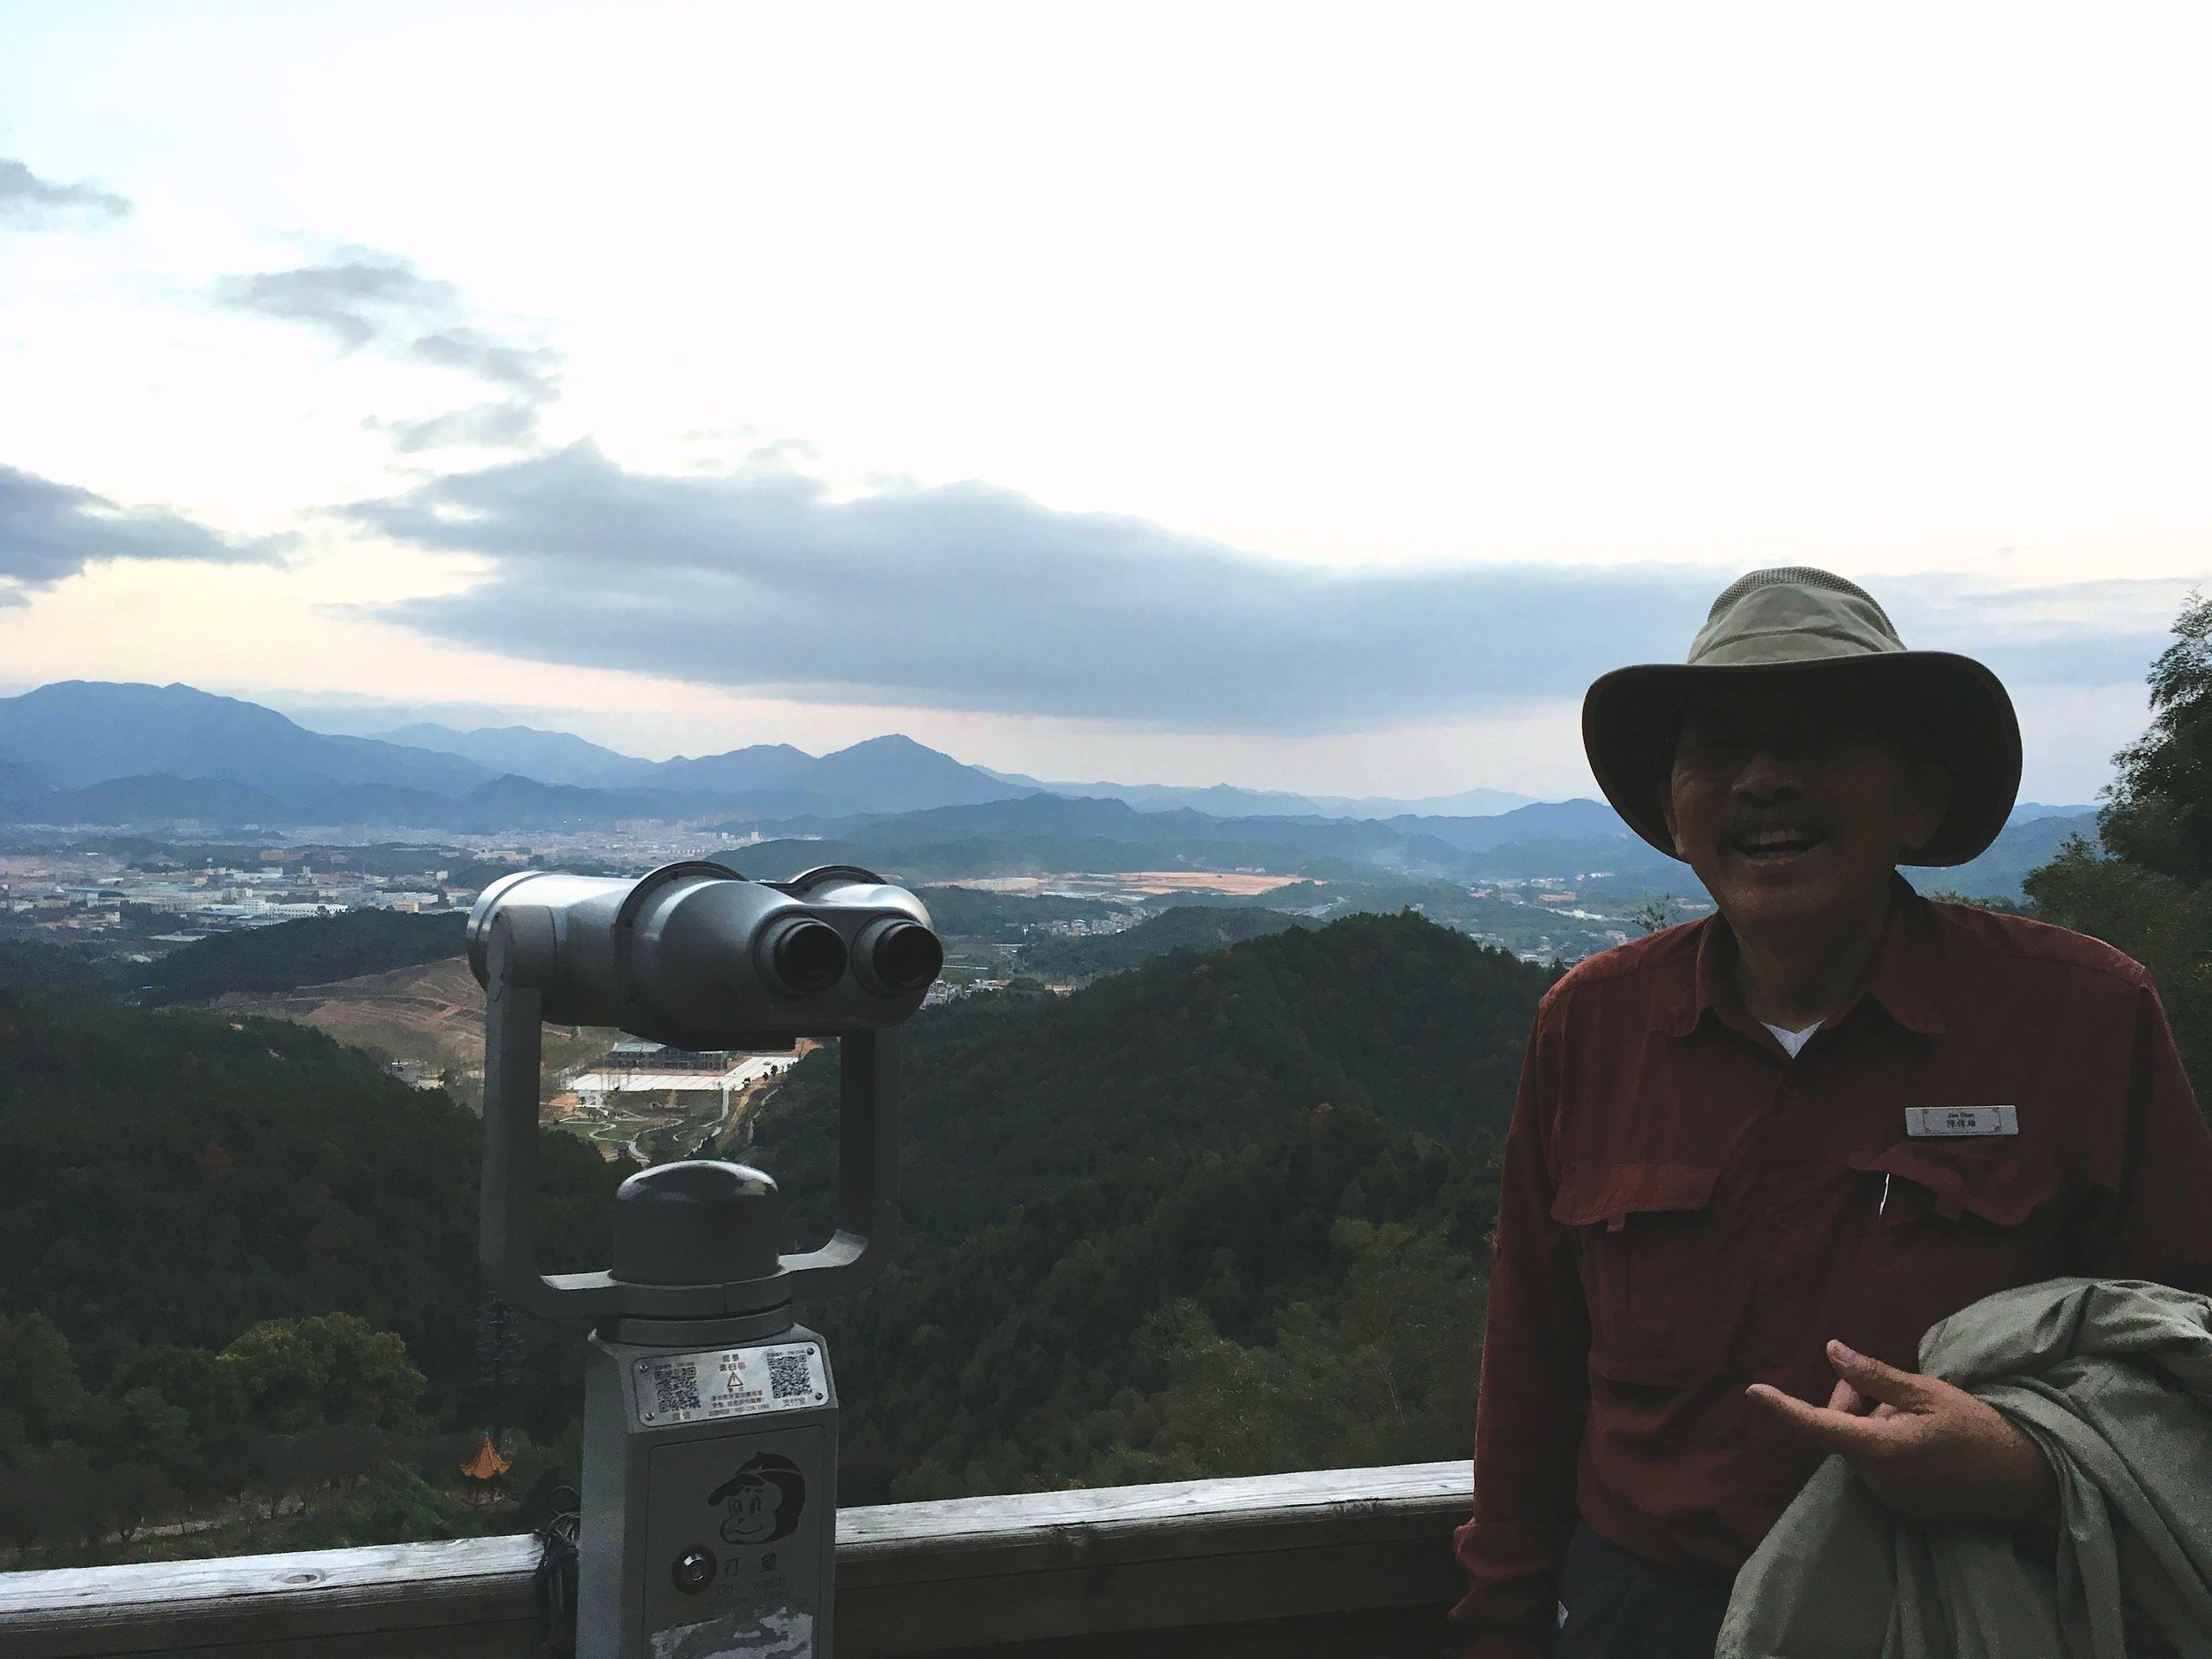 On the observation deck in Jiangxi Province